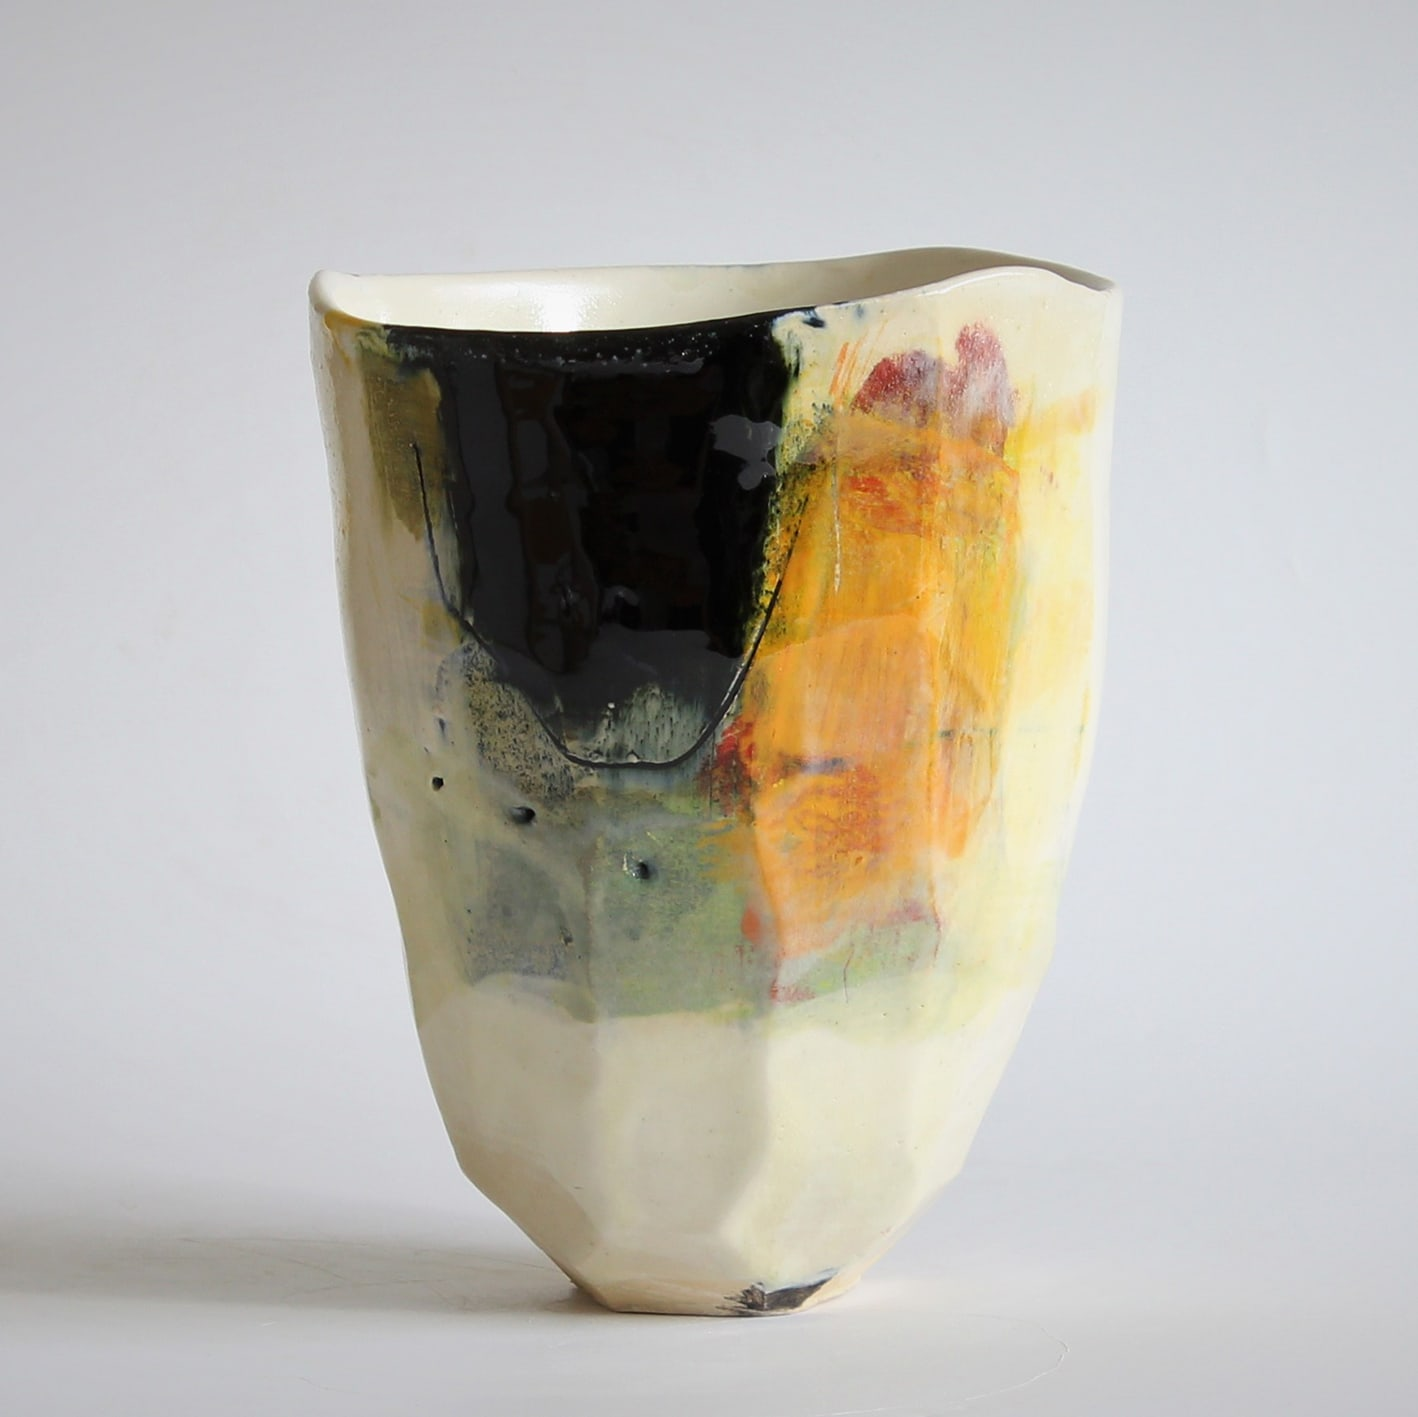 """<span class=""""link fancybox-details-link""""><a href=""""/artists/34-barry-stedman/works/6717-barry-stedman-each-passing-day-series-vessel-b-2019/"""">View Detail Page</a></span><div class=""""artist""""><strong>Barry Stedman</strong></div> b. 1965 <div class=""""title""""><em>'Each Passing Day' Series Vessel (B)</em>, 2019</div> <div class=""""medium"""">thrown and altered earthenware, decorated with slips</div> <div class=""""dimensions"""">19 x 15 cm</div><div class=""""copyright_line"""">Own Art: £ 29.90 x 10 Months, 0% APR</div>"""